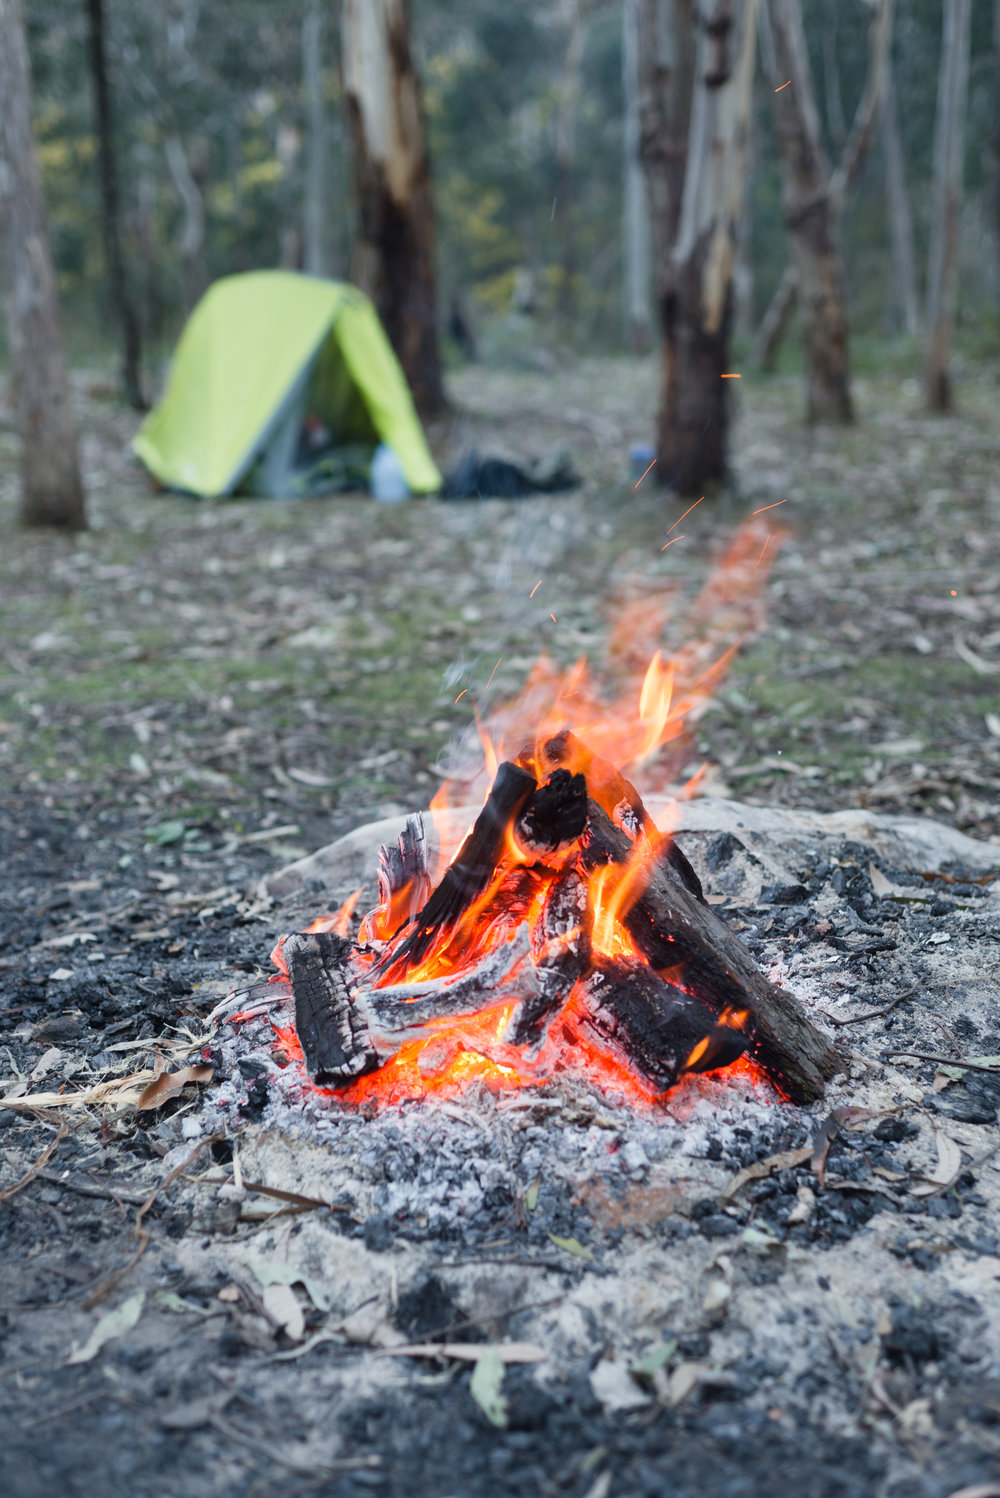 newnes camping ground nsw fire